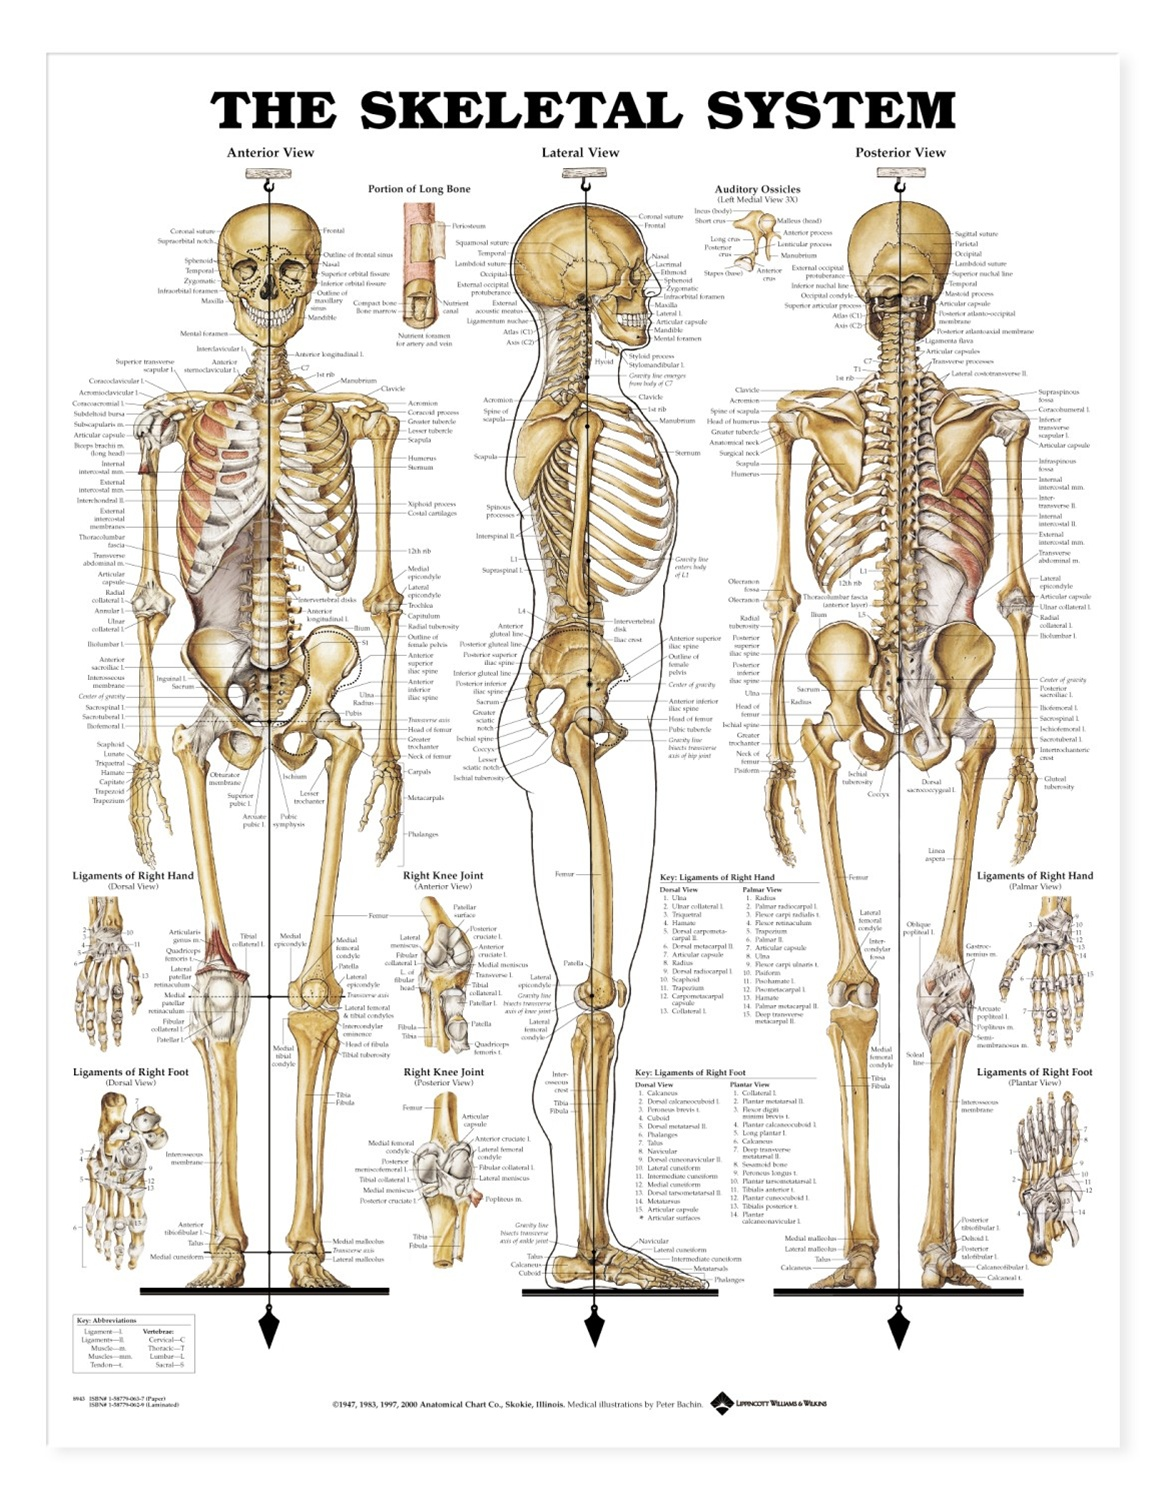 The skeletal system anatomical chart anatomy models and anatomical